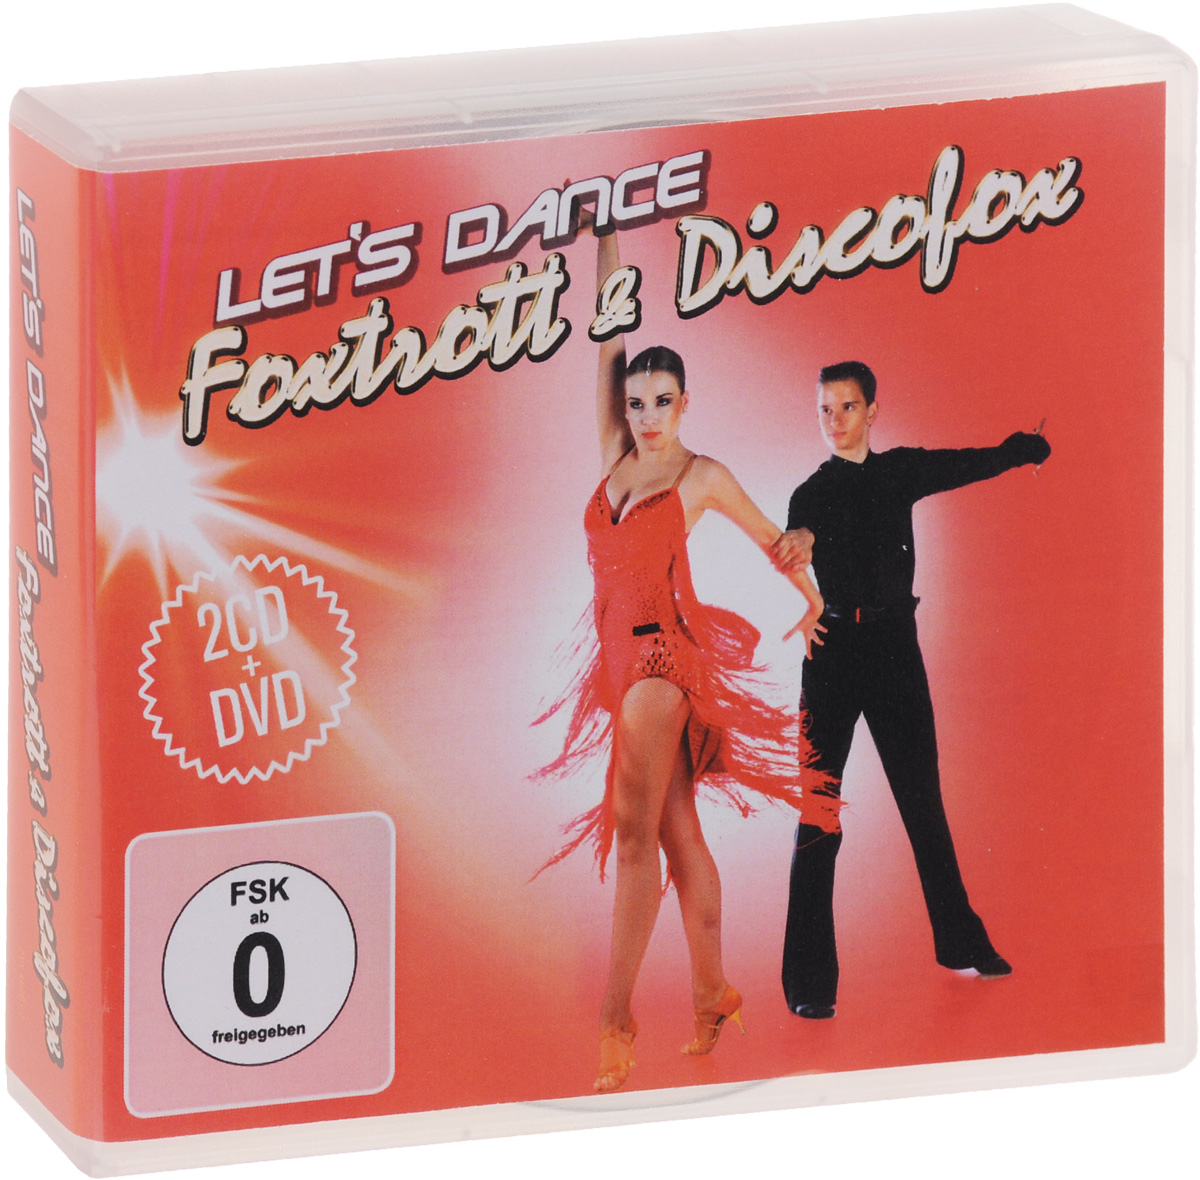 Let's Dance. Foxtrott & Discofox (2 CD + DVD) новая вода к687